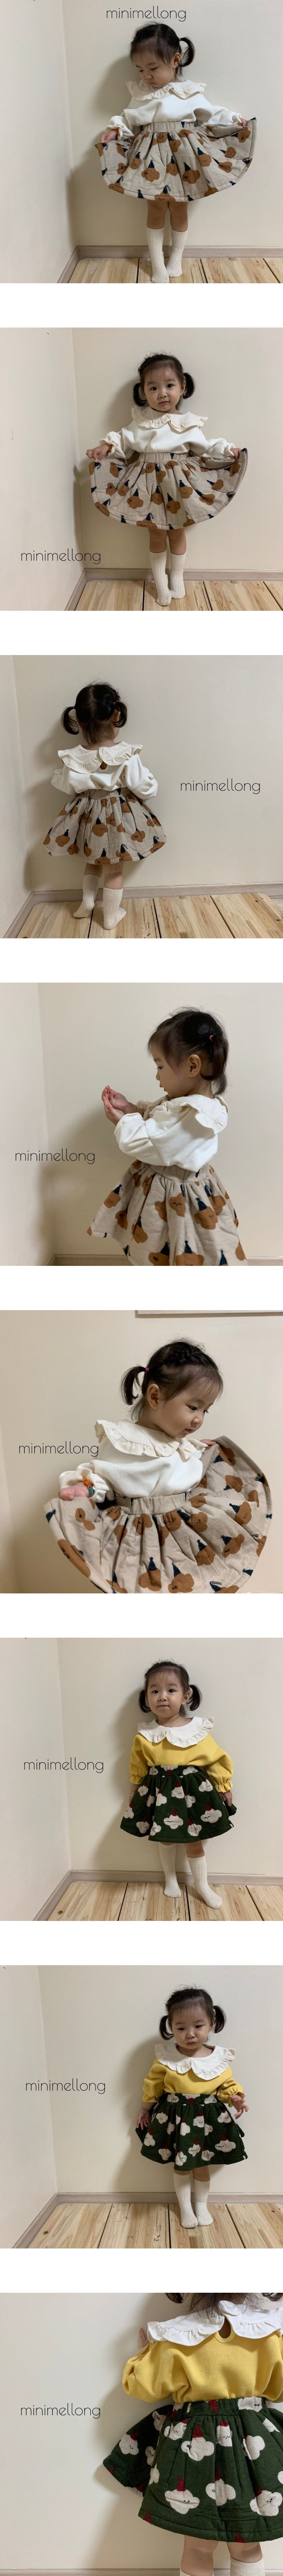 MINIMELLONG - Korean Children Fashion - #Kfashion4kids - Bonding Skirt